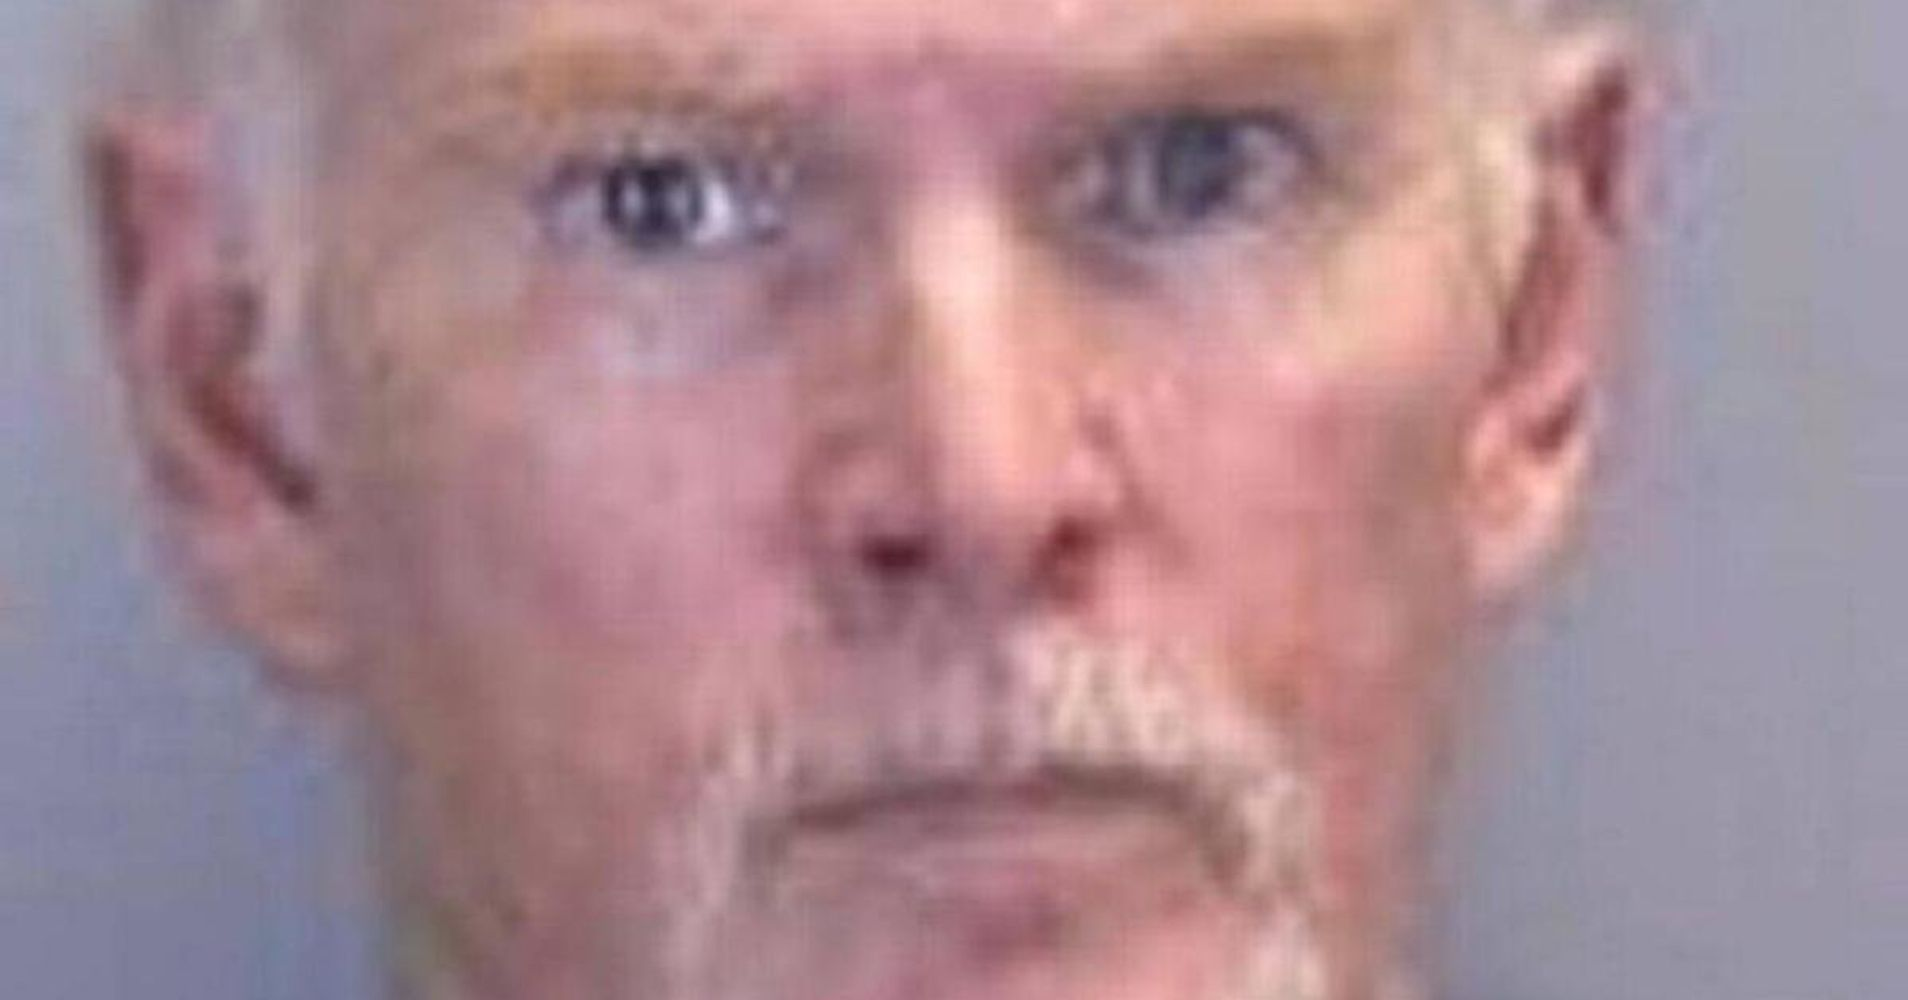 Fake Dentist Allegedly Pulled Teeth Without Anesthesia